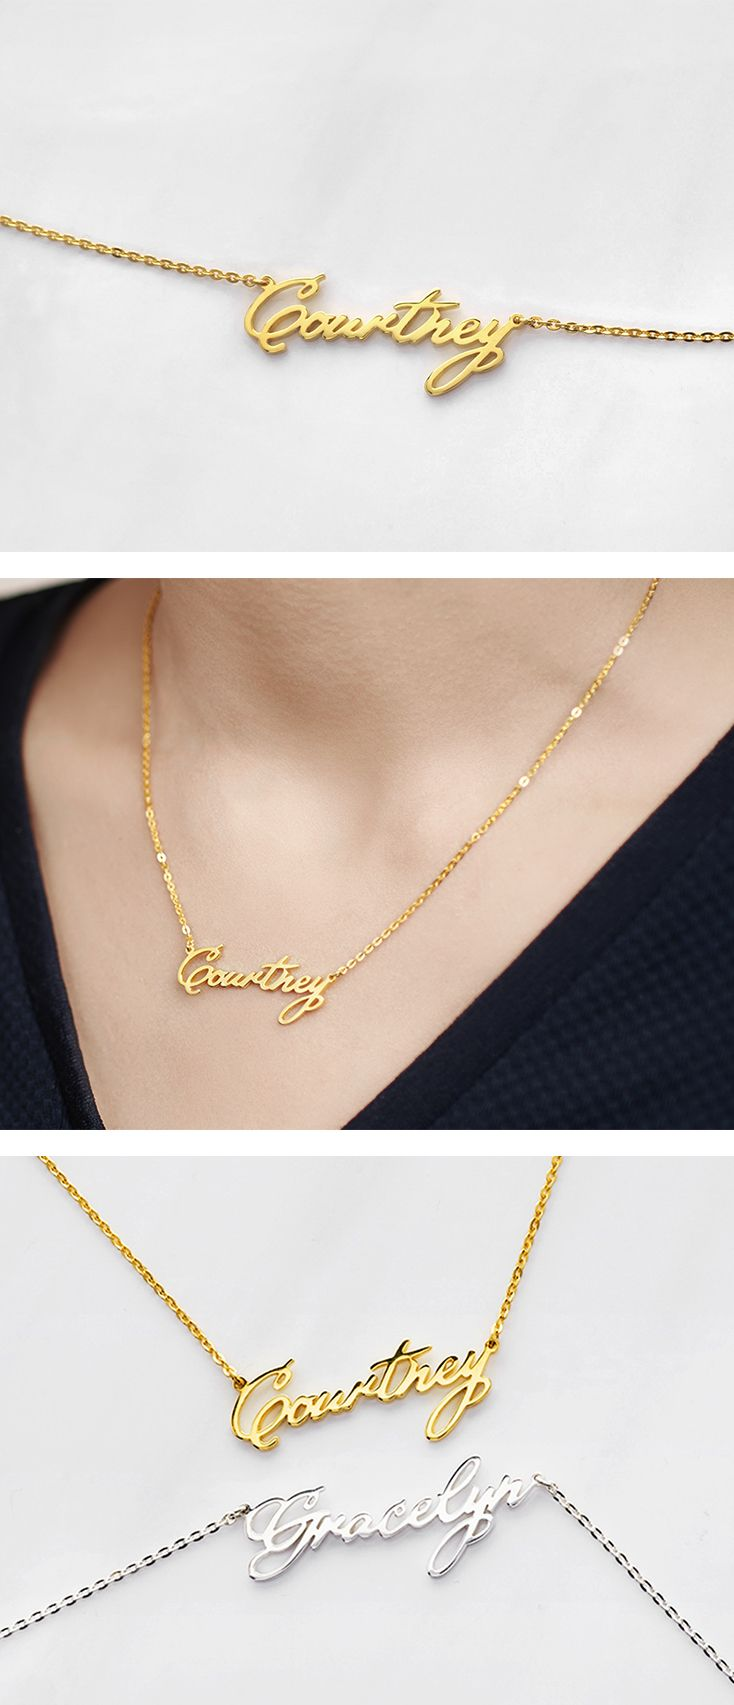 Personalized script name necklace childrens gifts personalised personalized script name necklace negle Choice Image